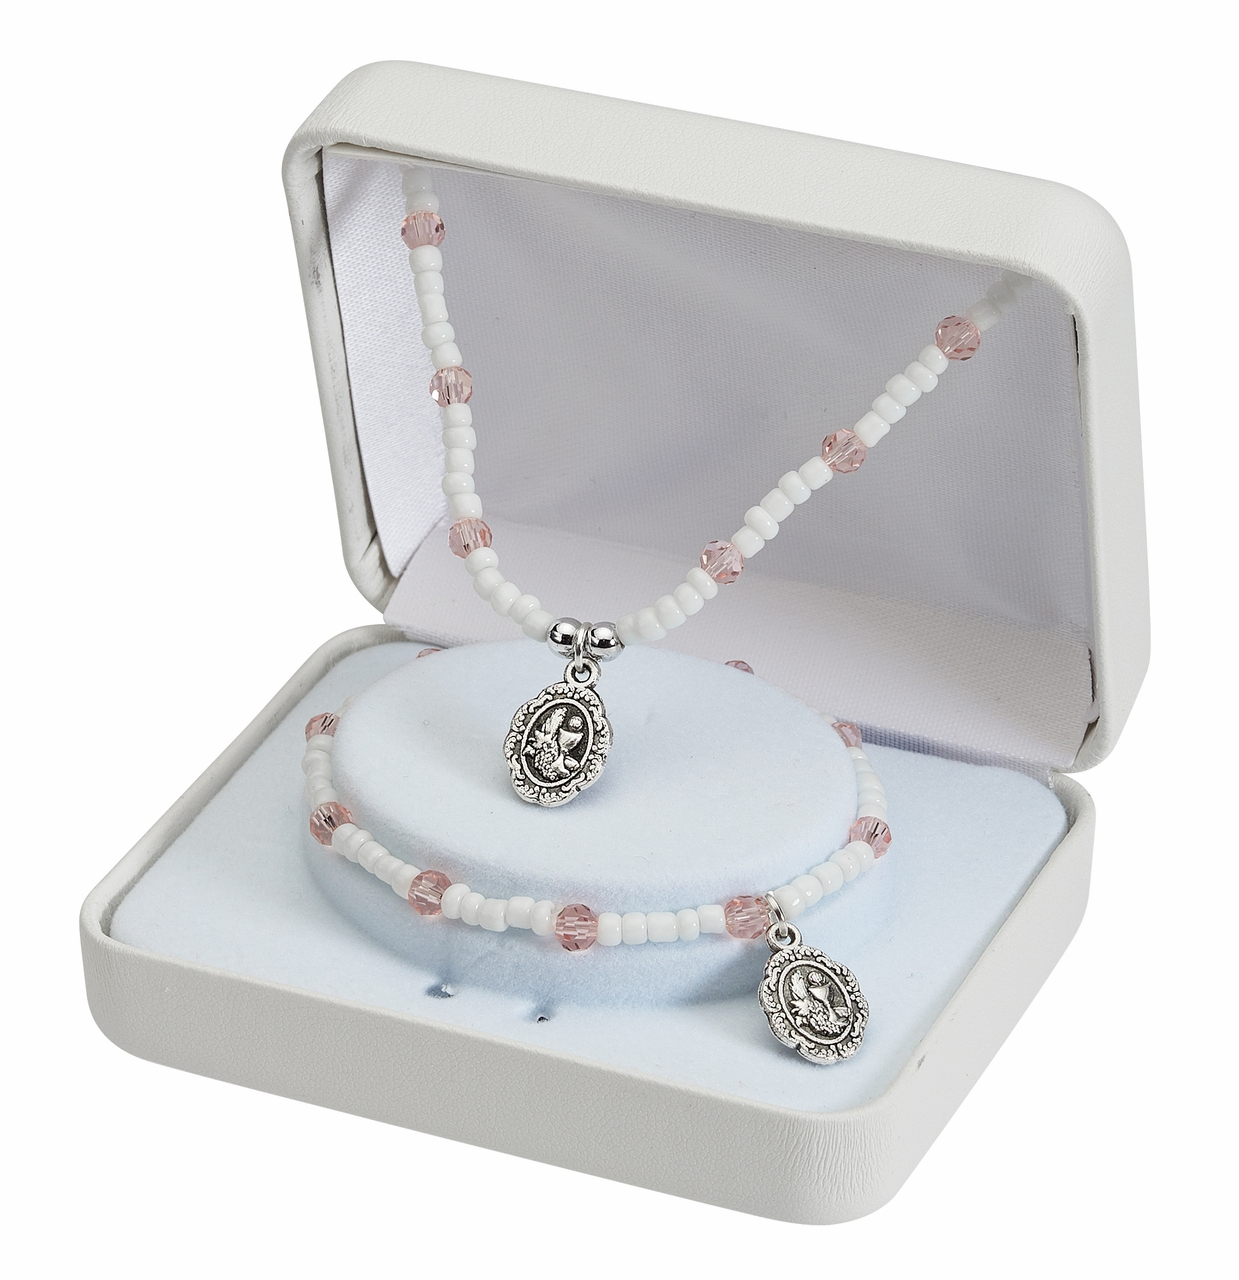 McVan Chalice Communion Pink and White Bracelet and Necklace Set